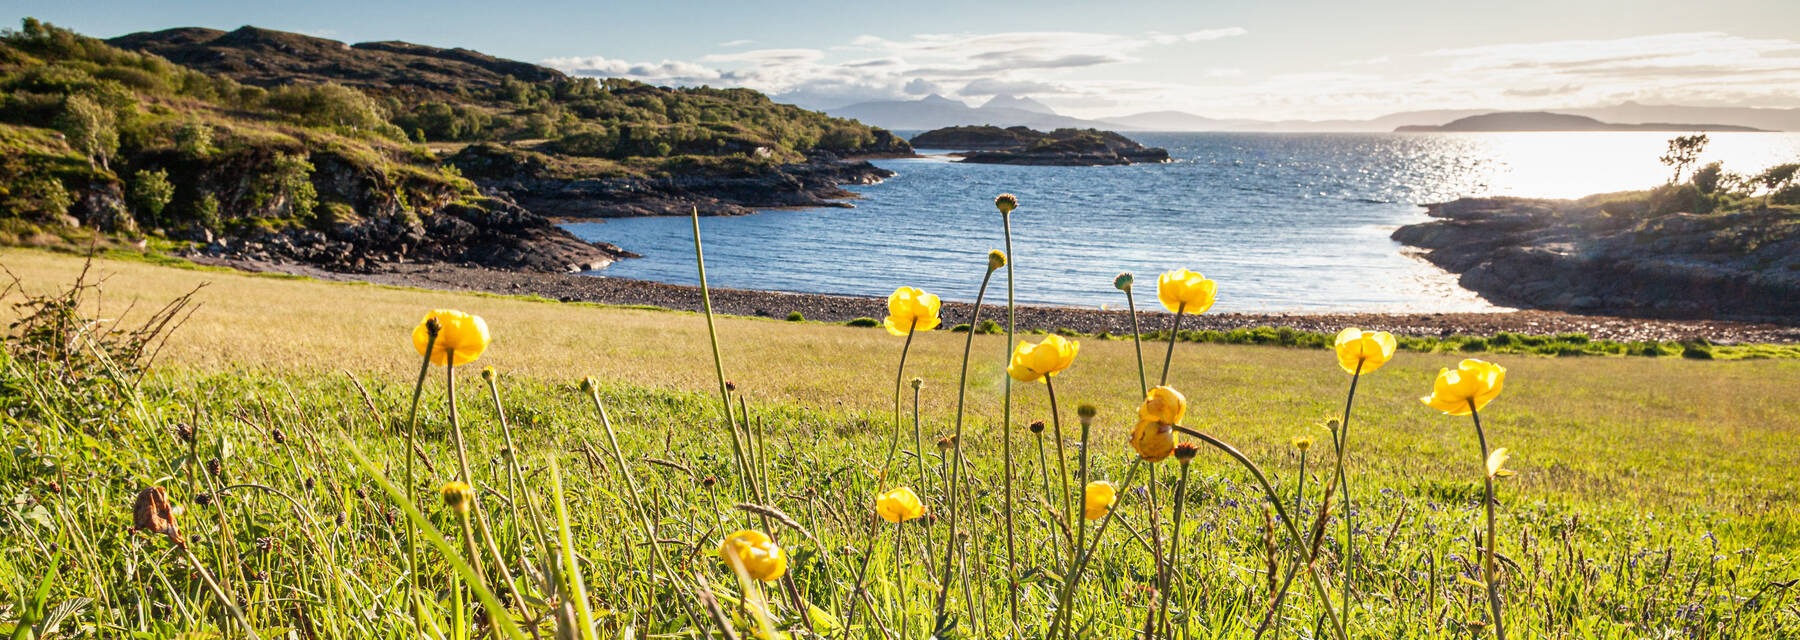 Yellow globe flowers with a beach and the sea in the background, at Balmacara in the highlands.